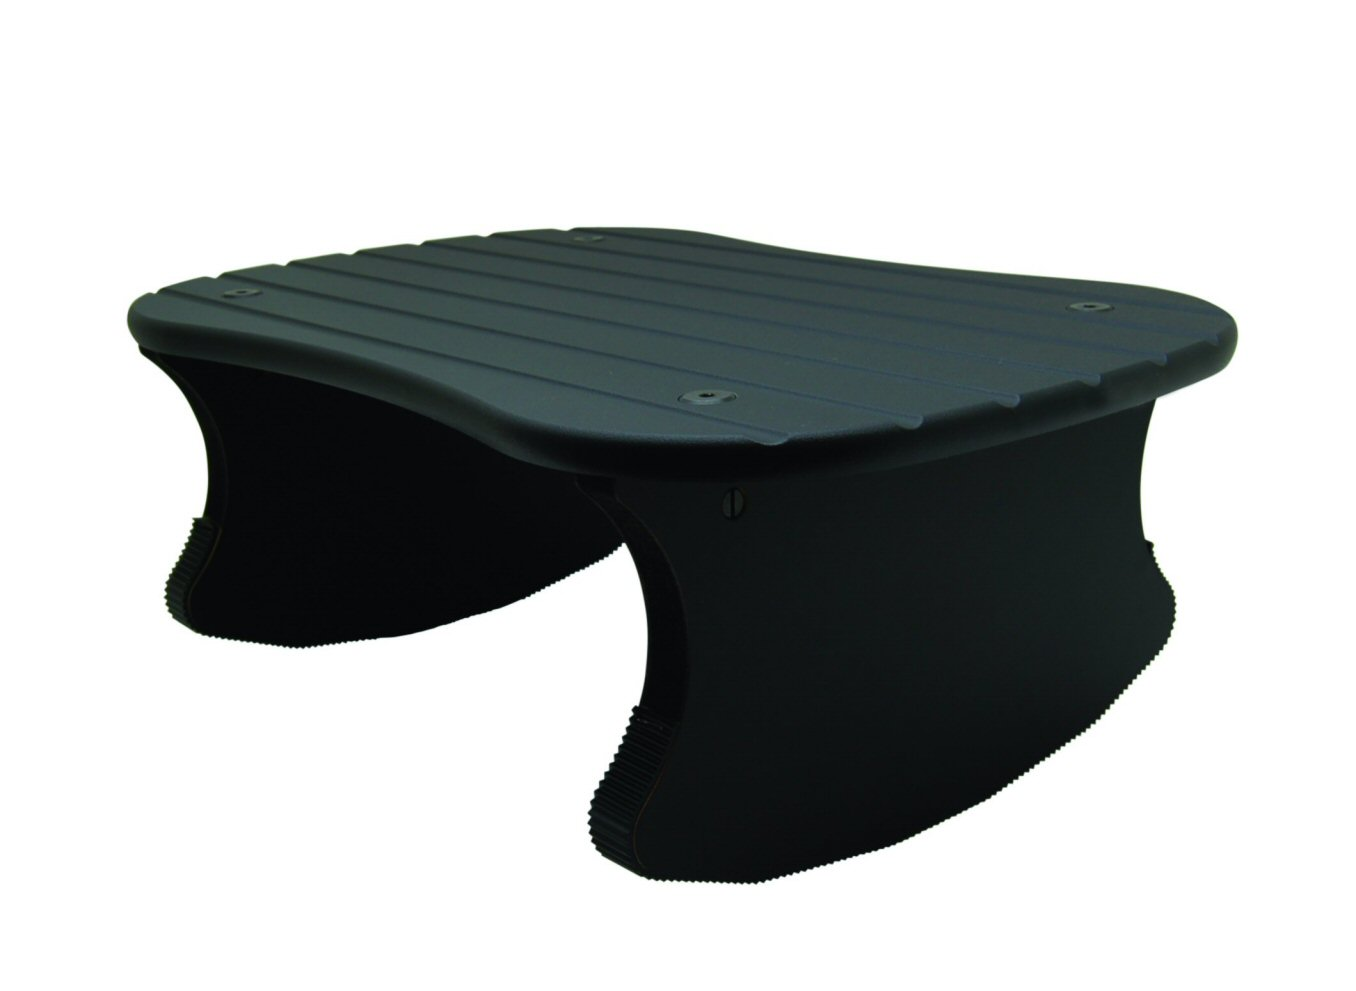 rock 39 n stop foot rest 6 h platform. Black Bedroom Furniture Sets. Home Design Ideas